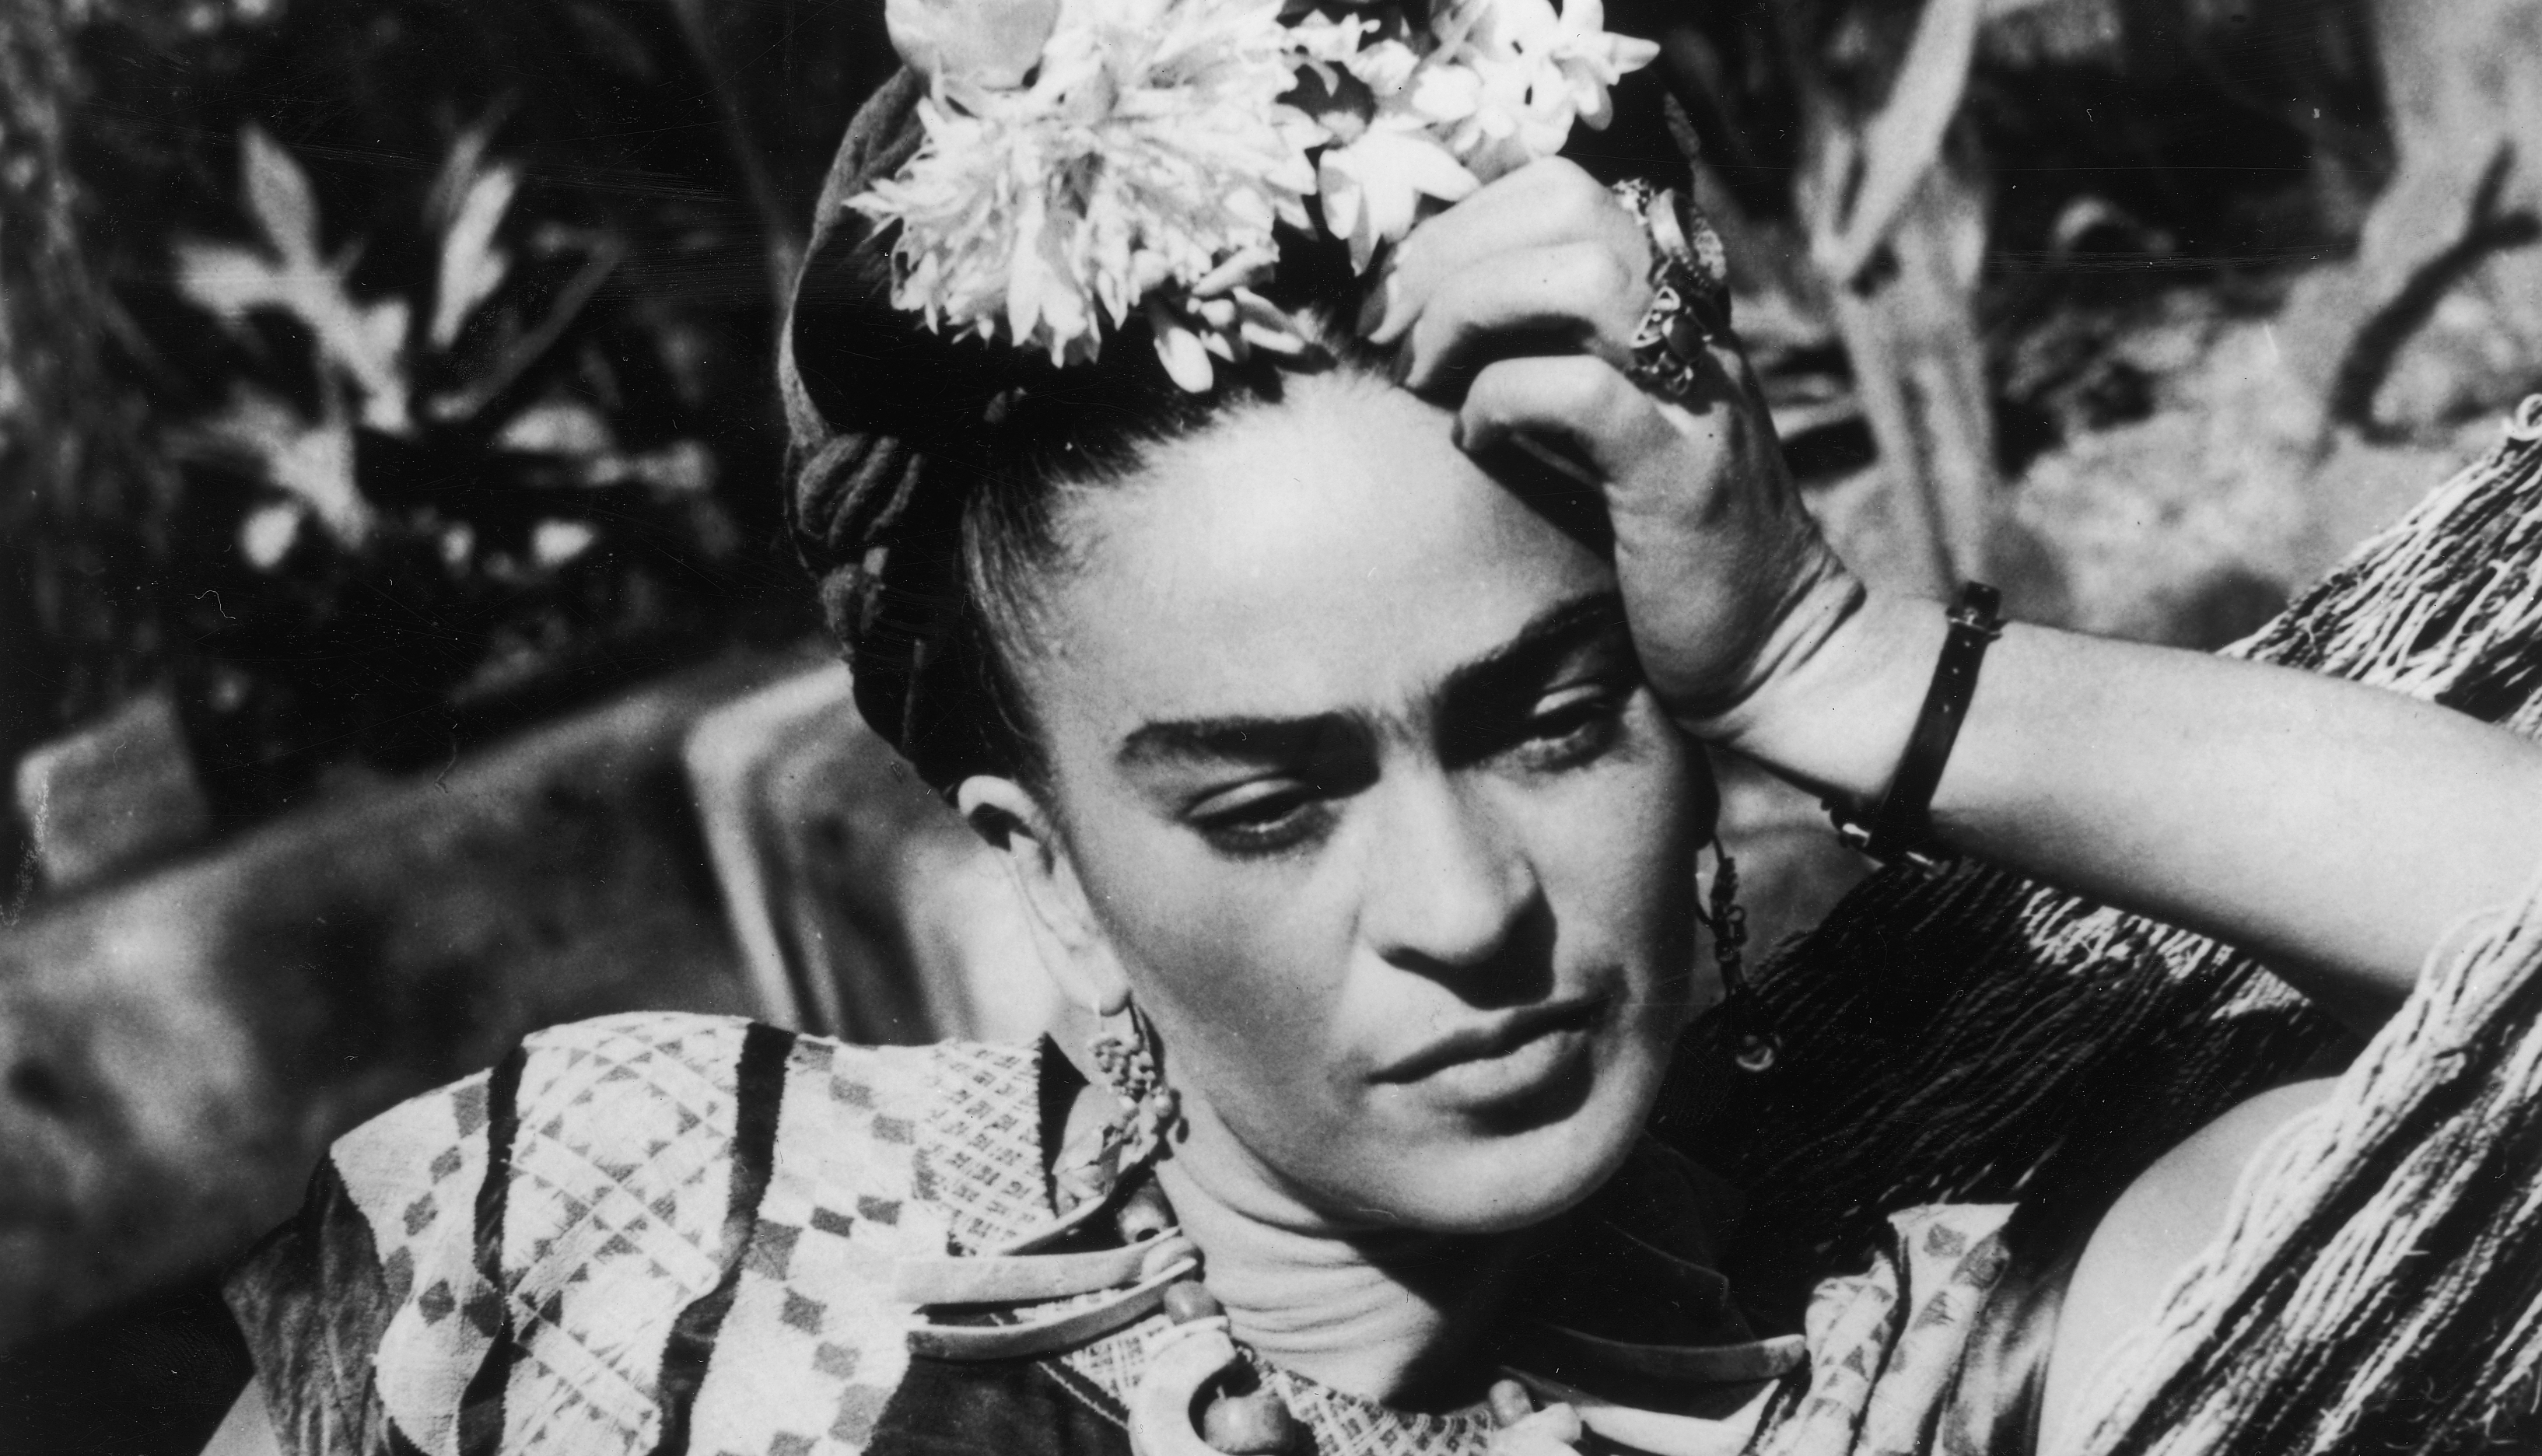 New Play About Frida Kahlo's Life Attracts Attention for Its Depiction of the Artist's Death